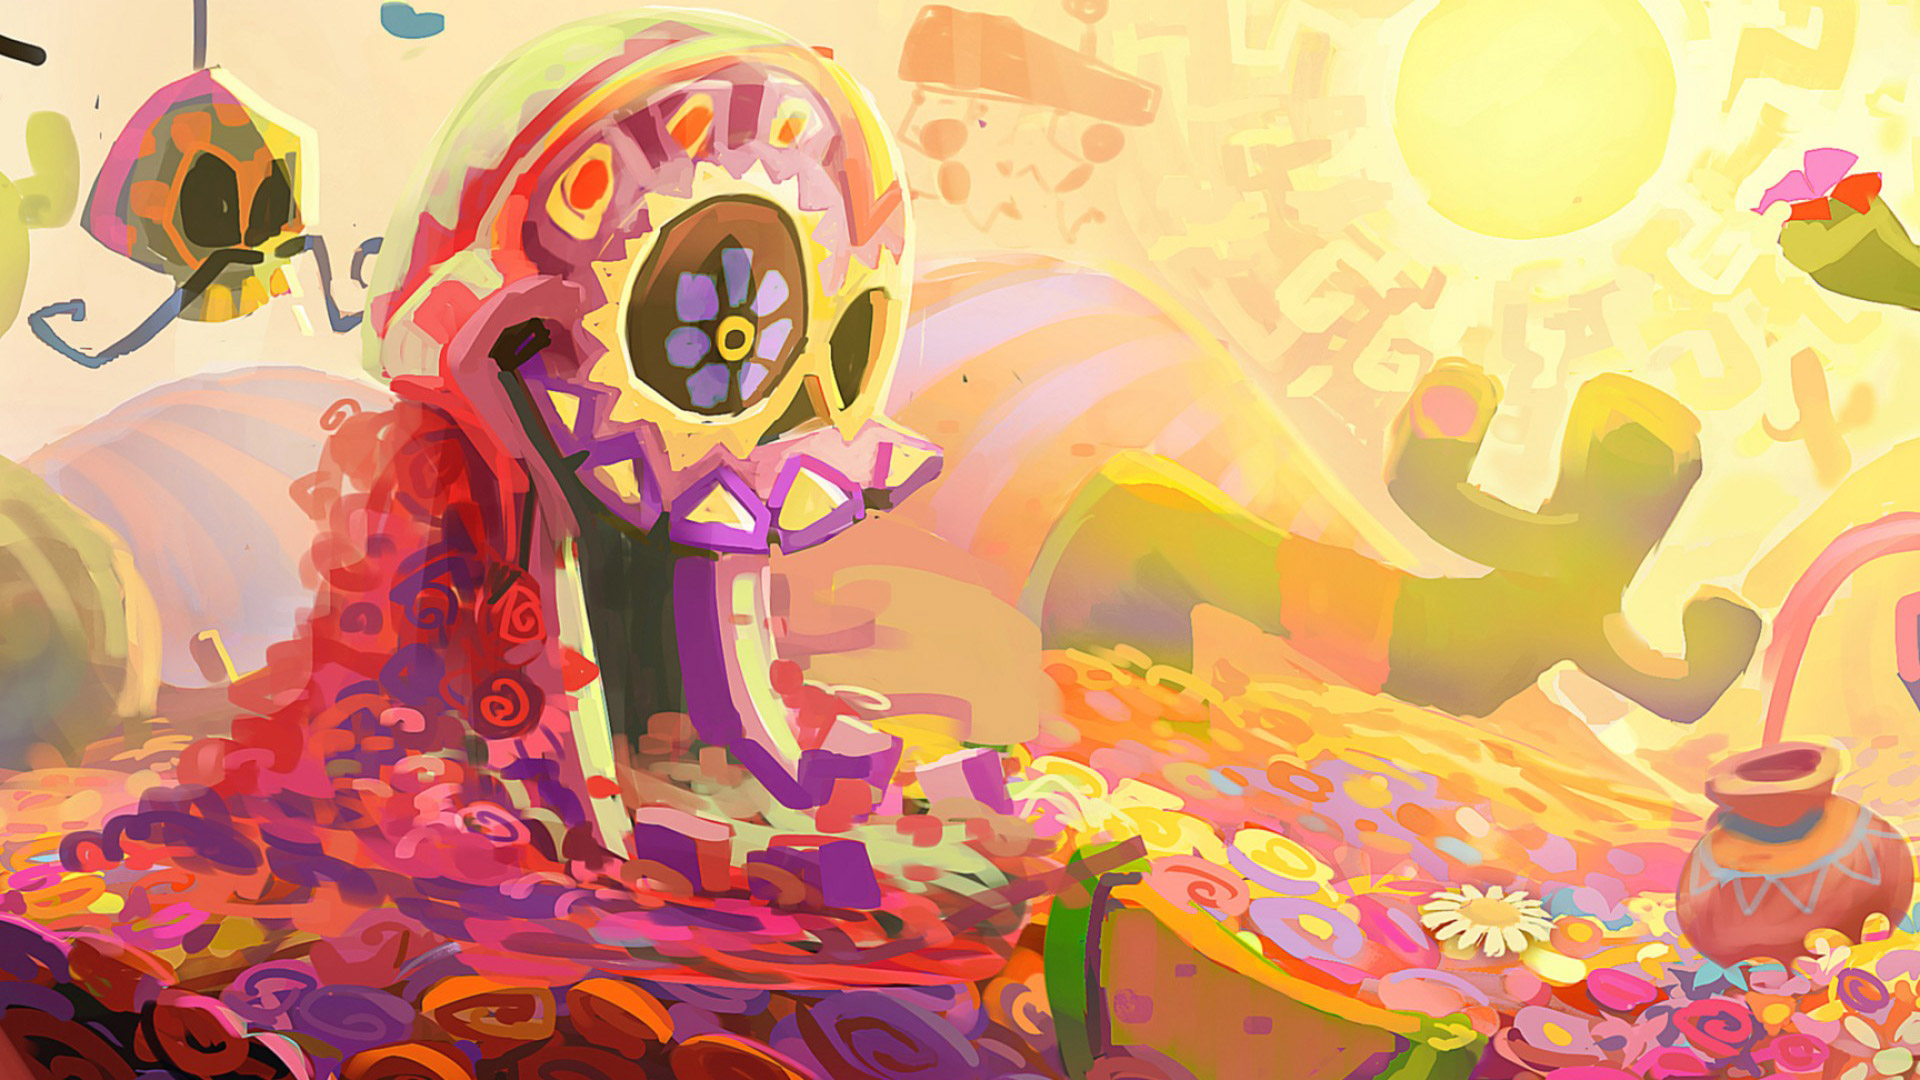 Free Rayman Legends Wallpaper in 1920x1080